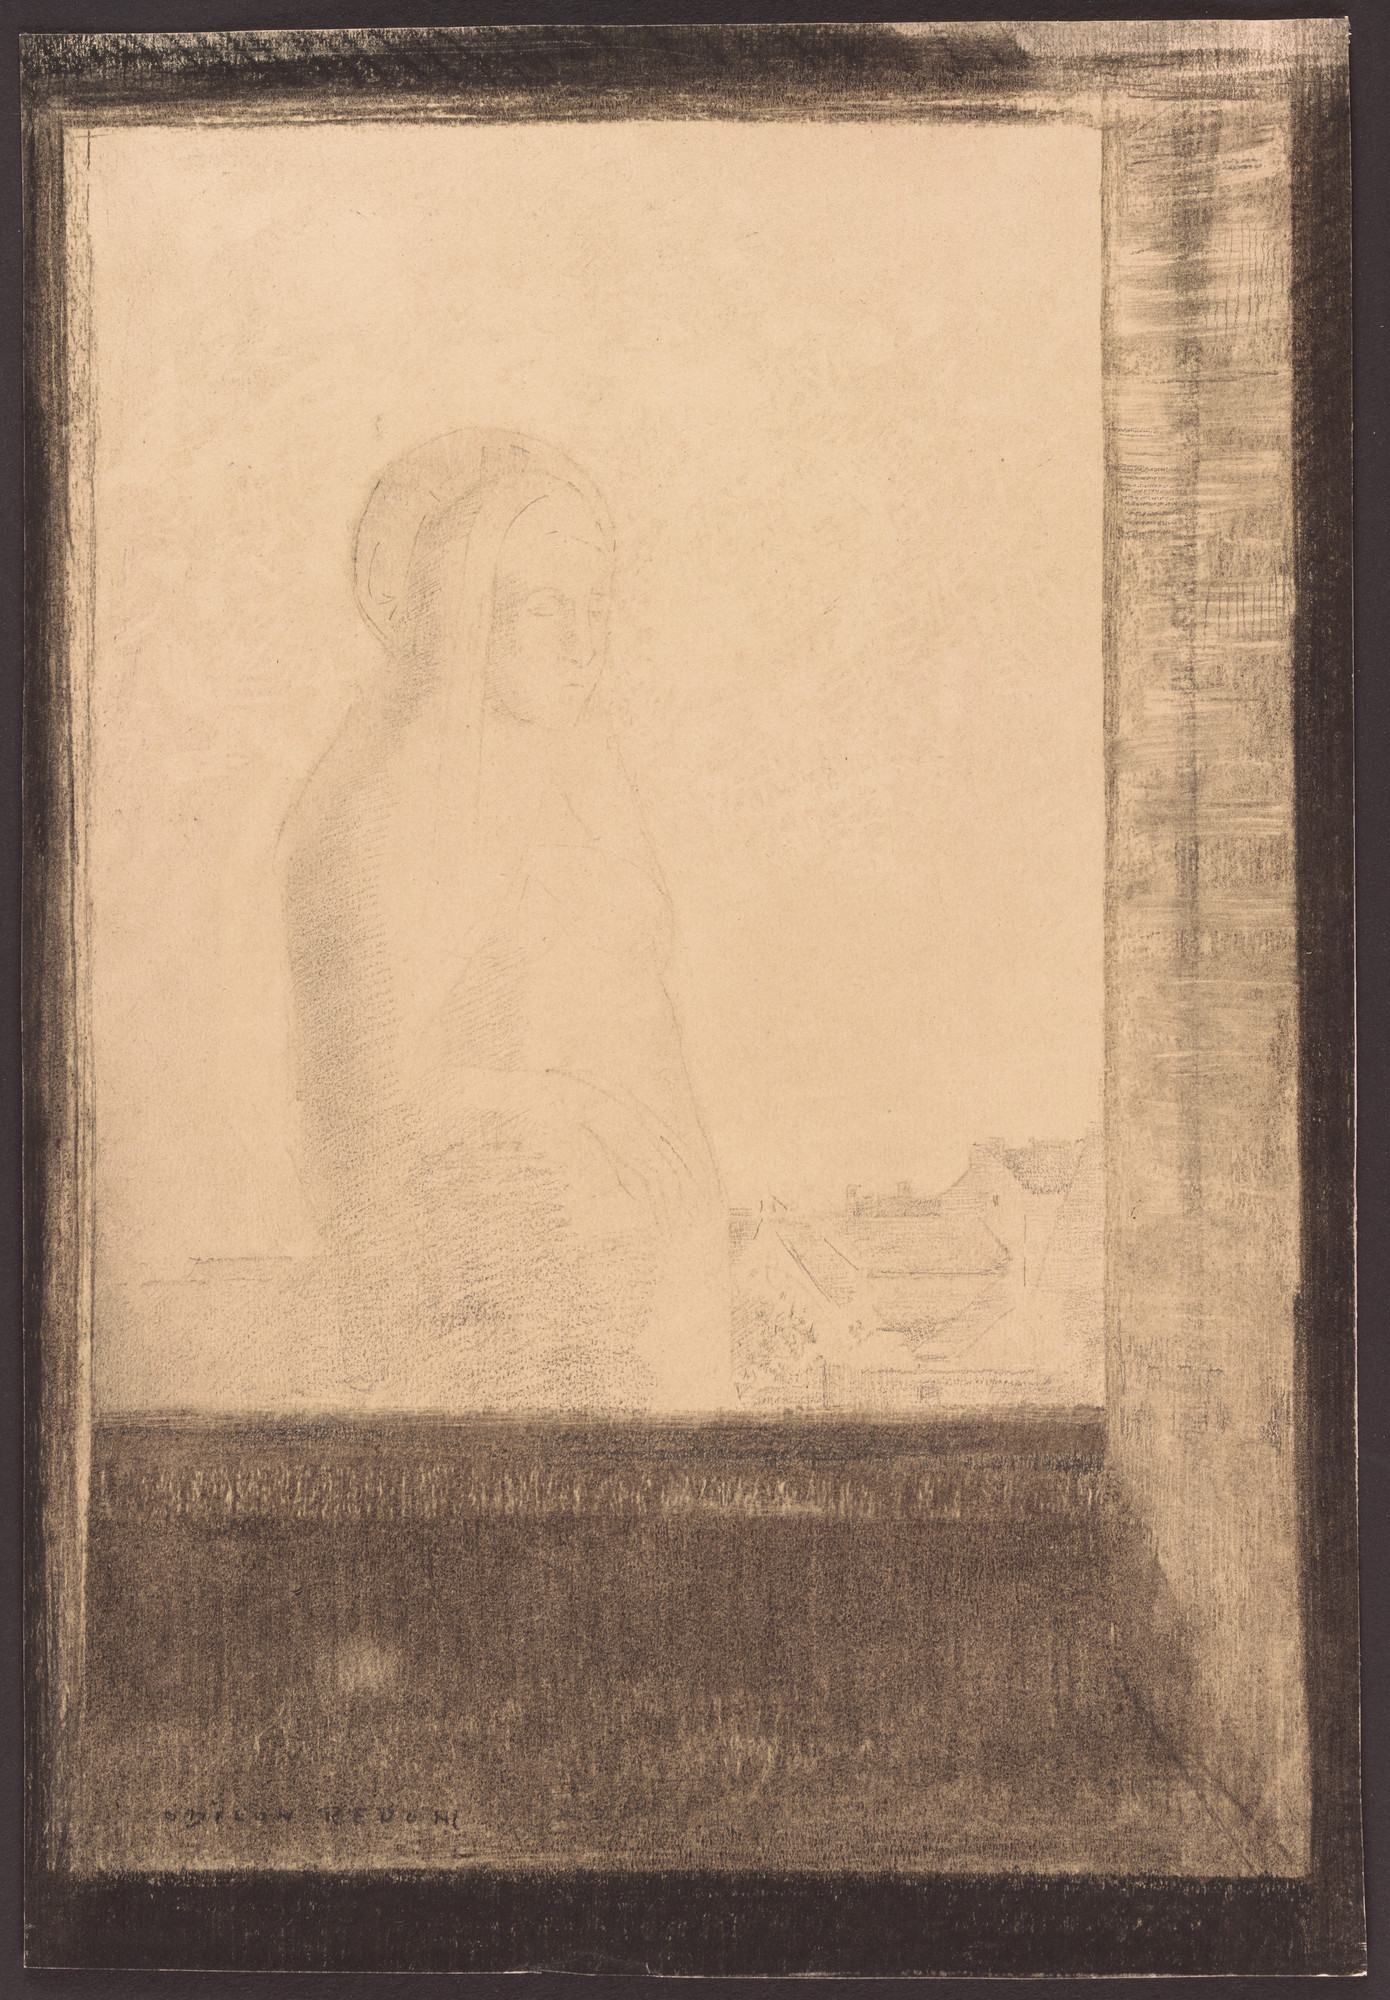 Odilon Redon. Apparition in the Window. (c. 1892)